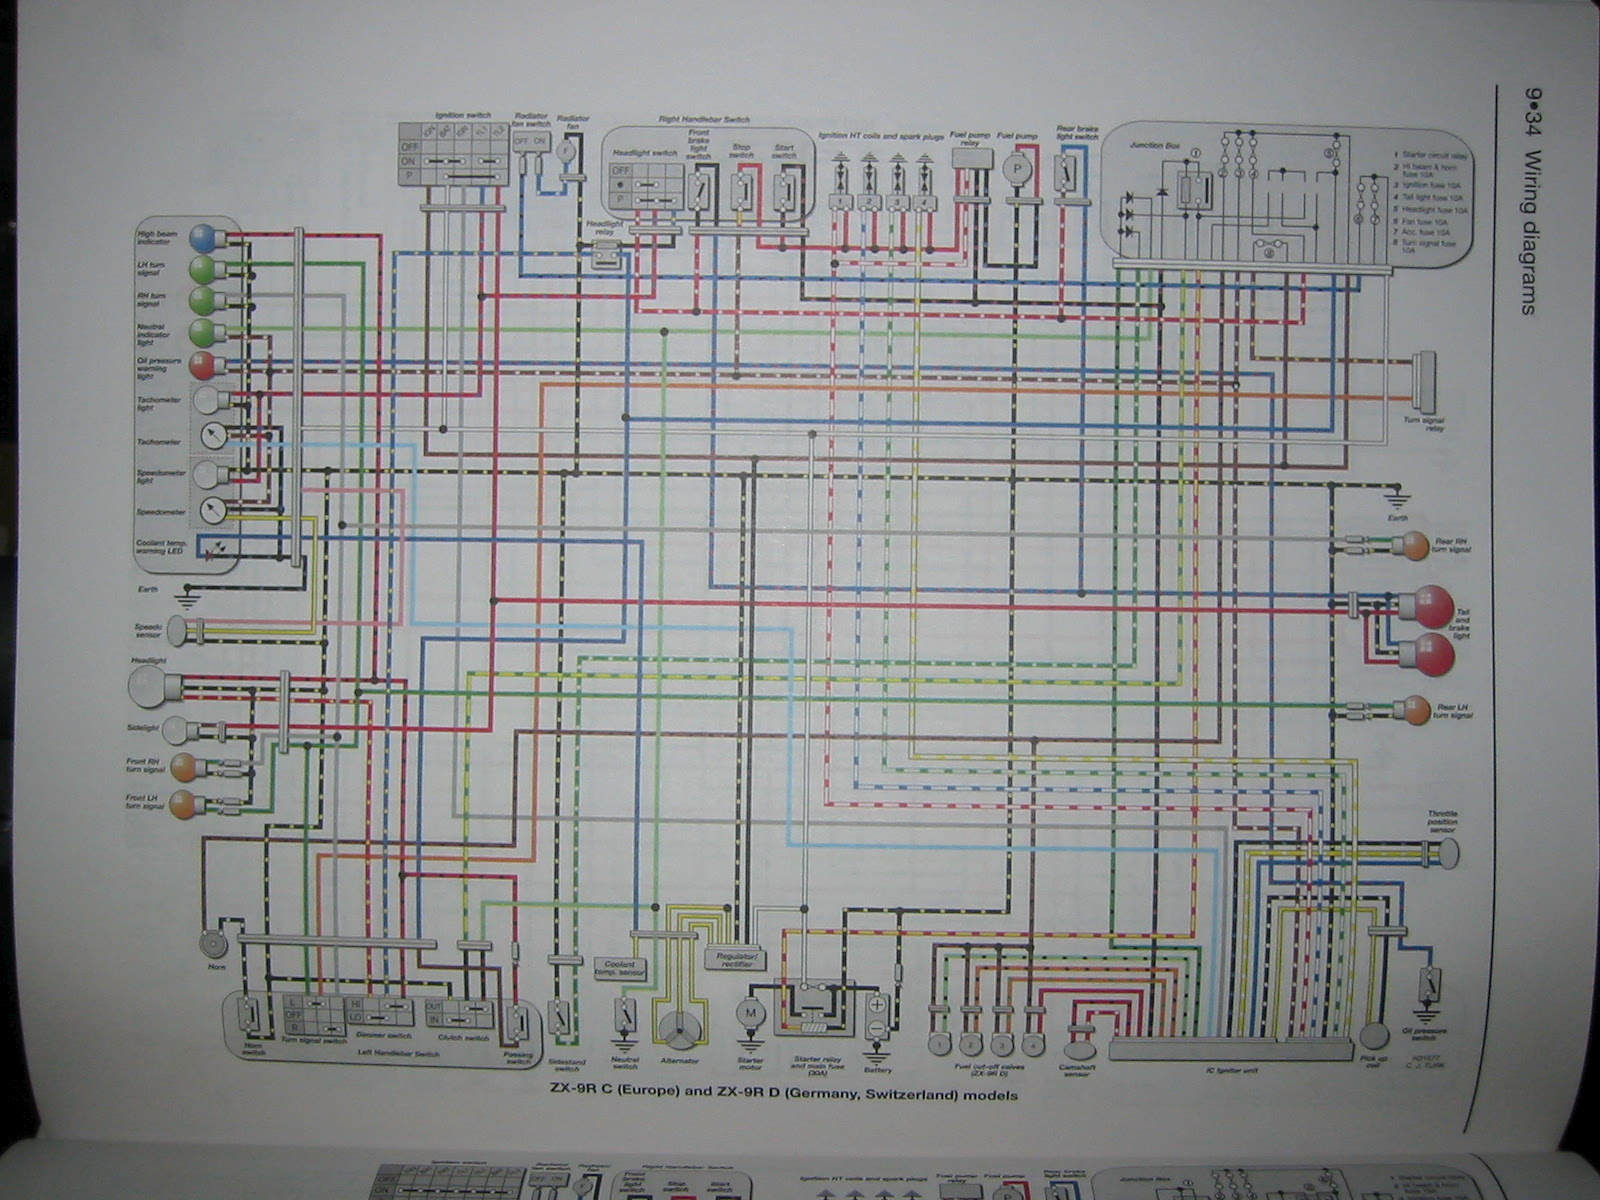 zx9r wiring diagram wiring diagram schematics